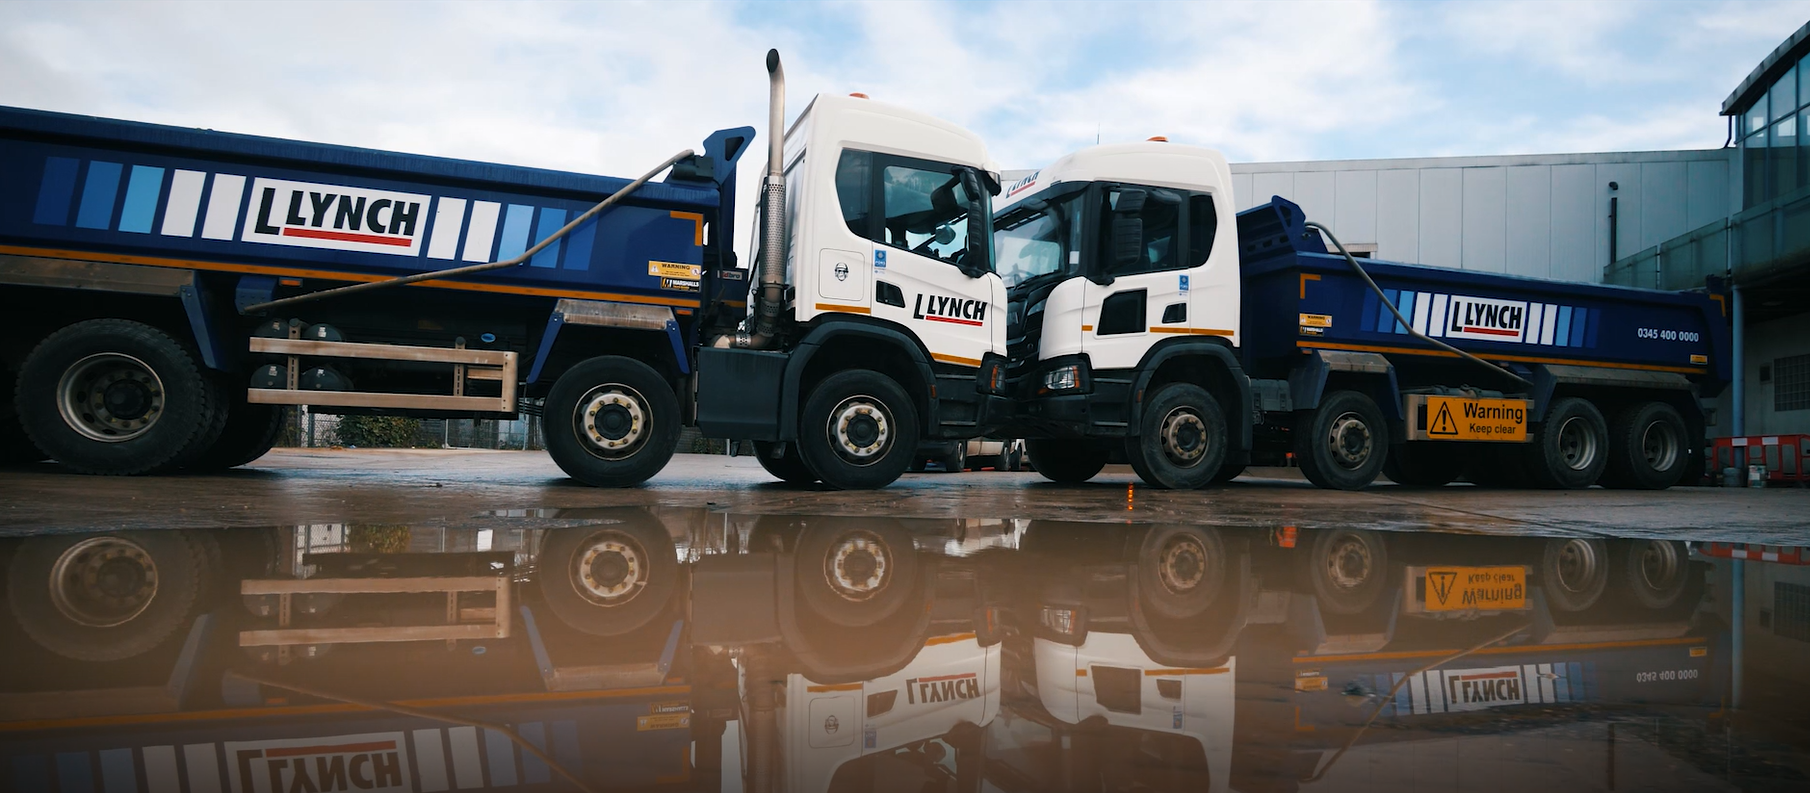 L Lynch Reduce Accident Rate & Insurance Costs